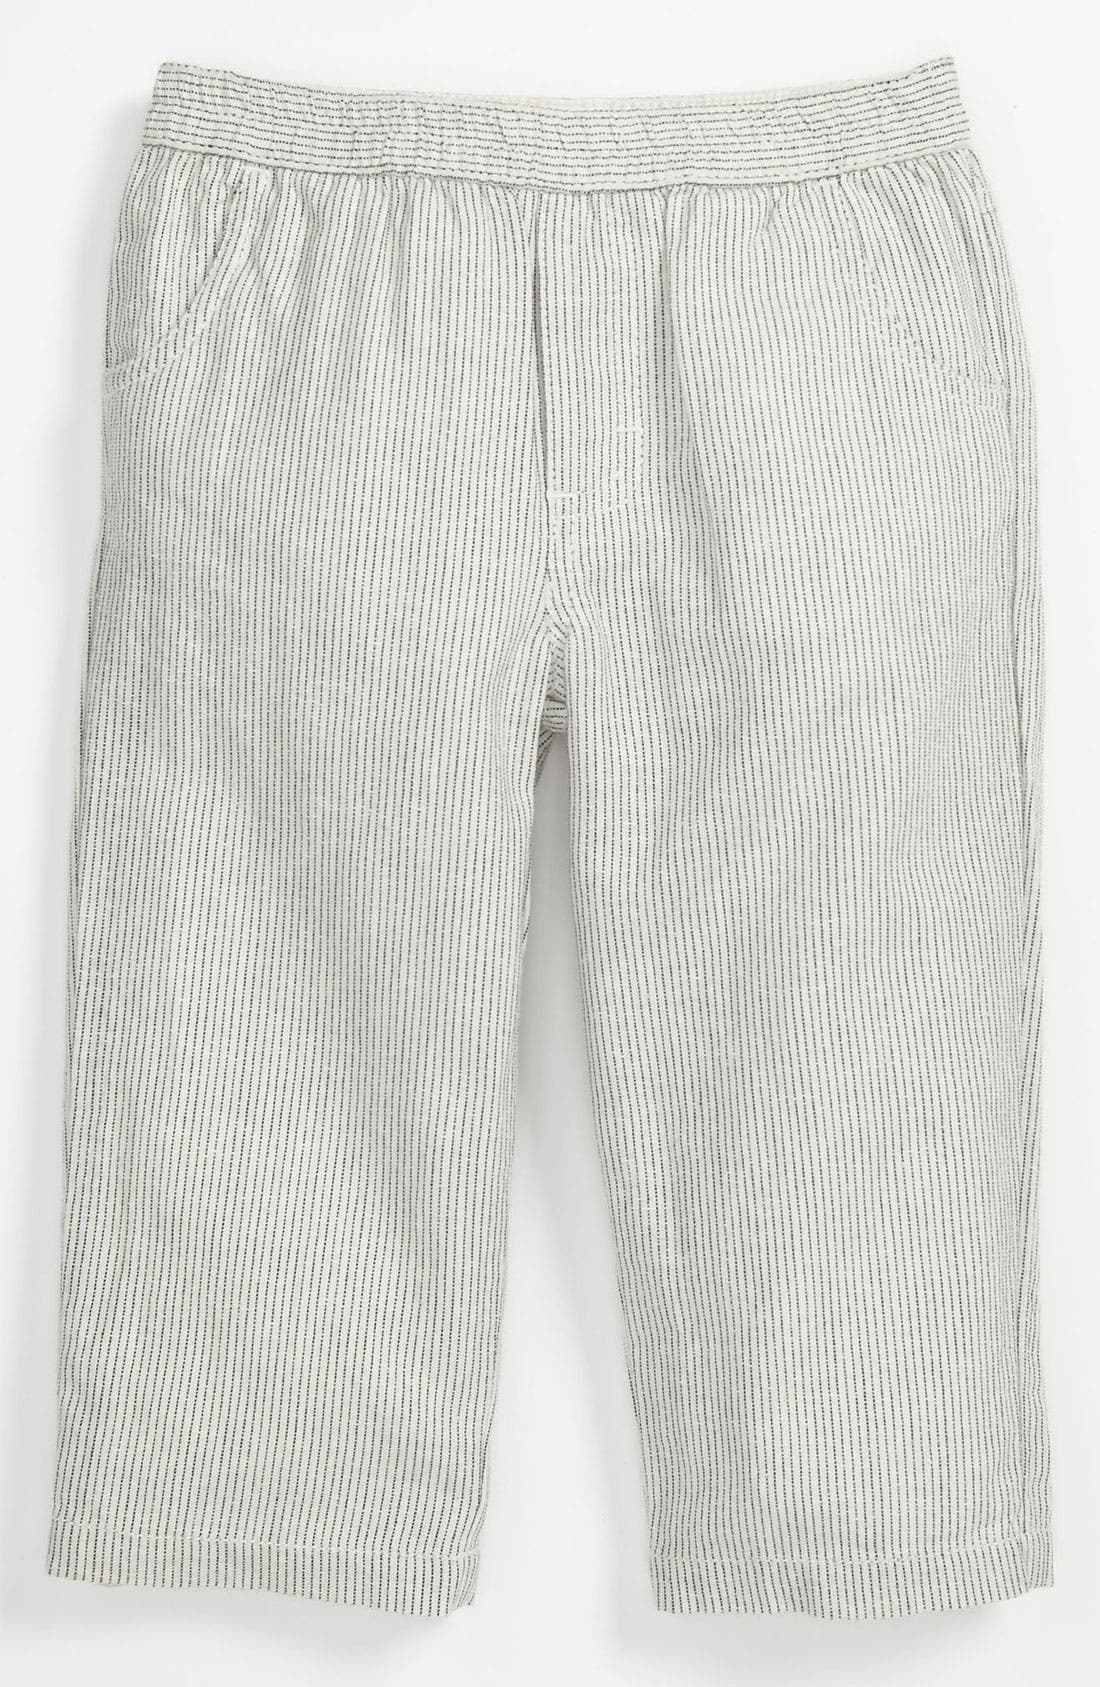 Alternate Image 1 Selected - Nordstrom Baby 'Spring' Woven Pants (Baby)